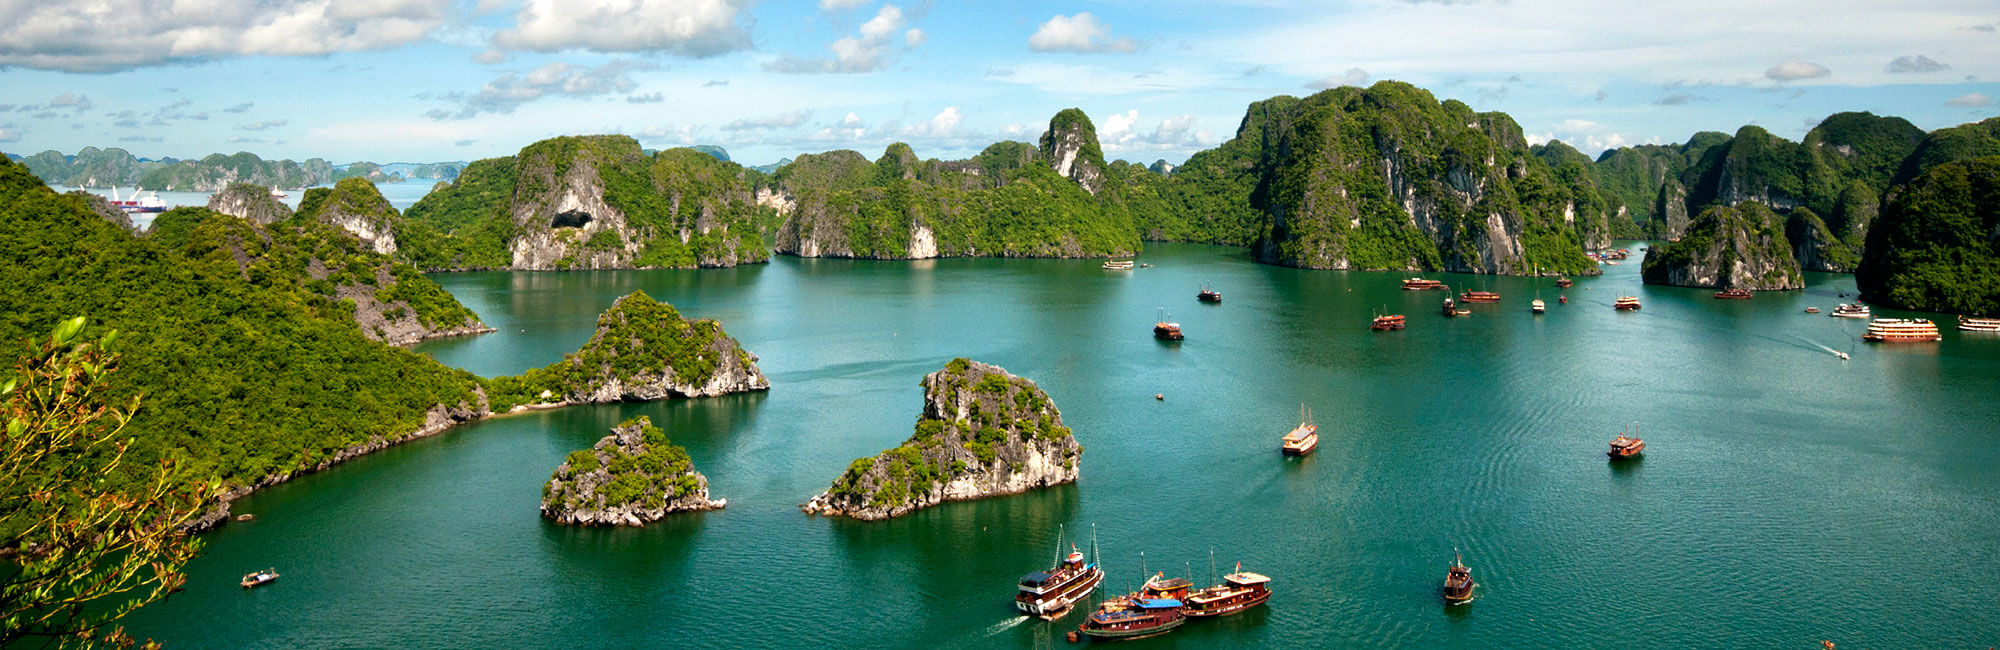 Vietnam Luxury Travel Tours | Butterfield & Robinson